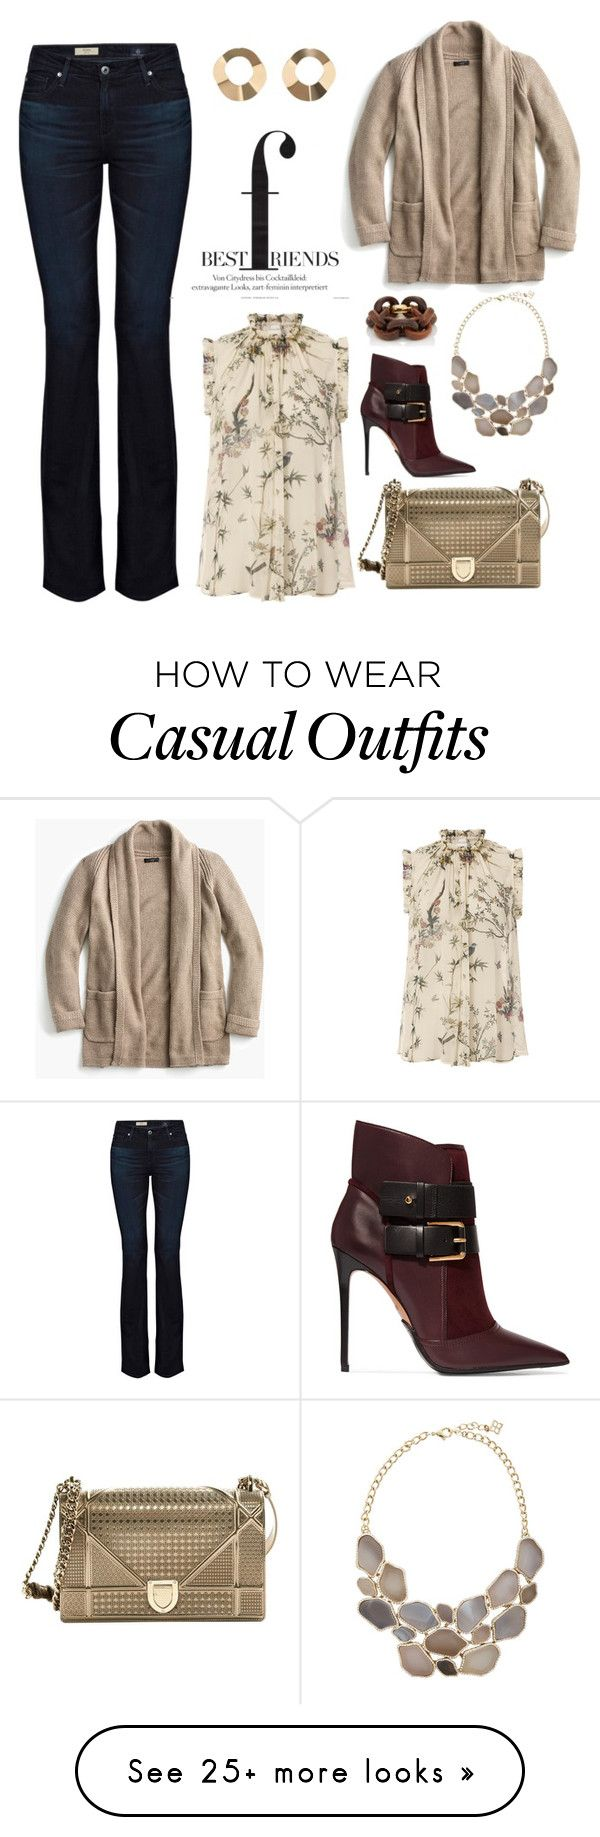 """""""Casual Cardigan"""" by stileclassico on Polyvore featuring AG Adriano Goldschmied, J.Crew, Zimmermann, Christian Dior, Balmain, MANGO and Goossens"""